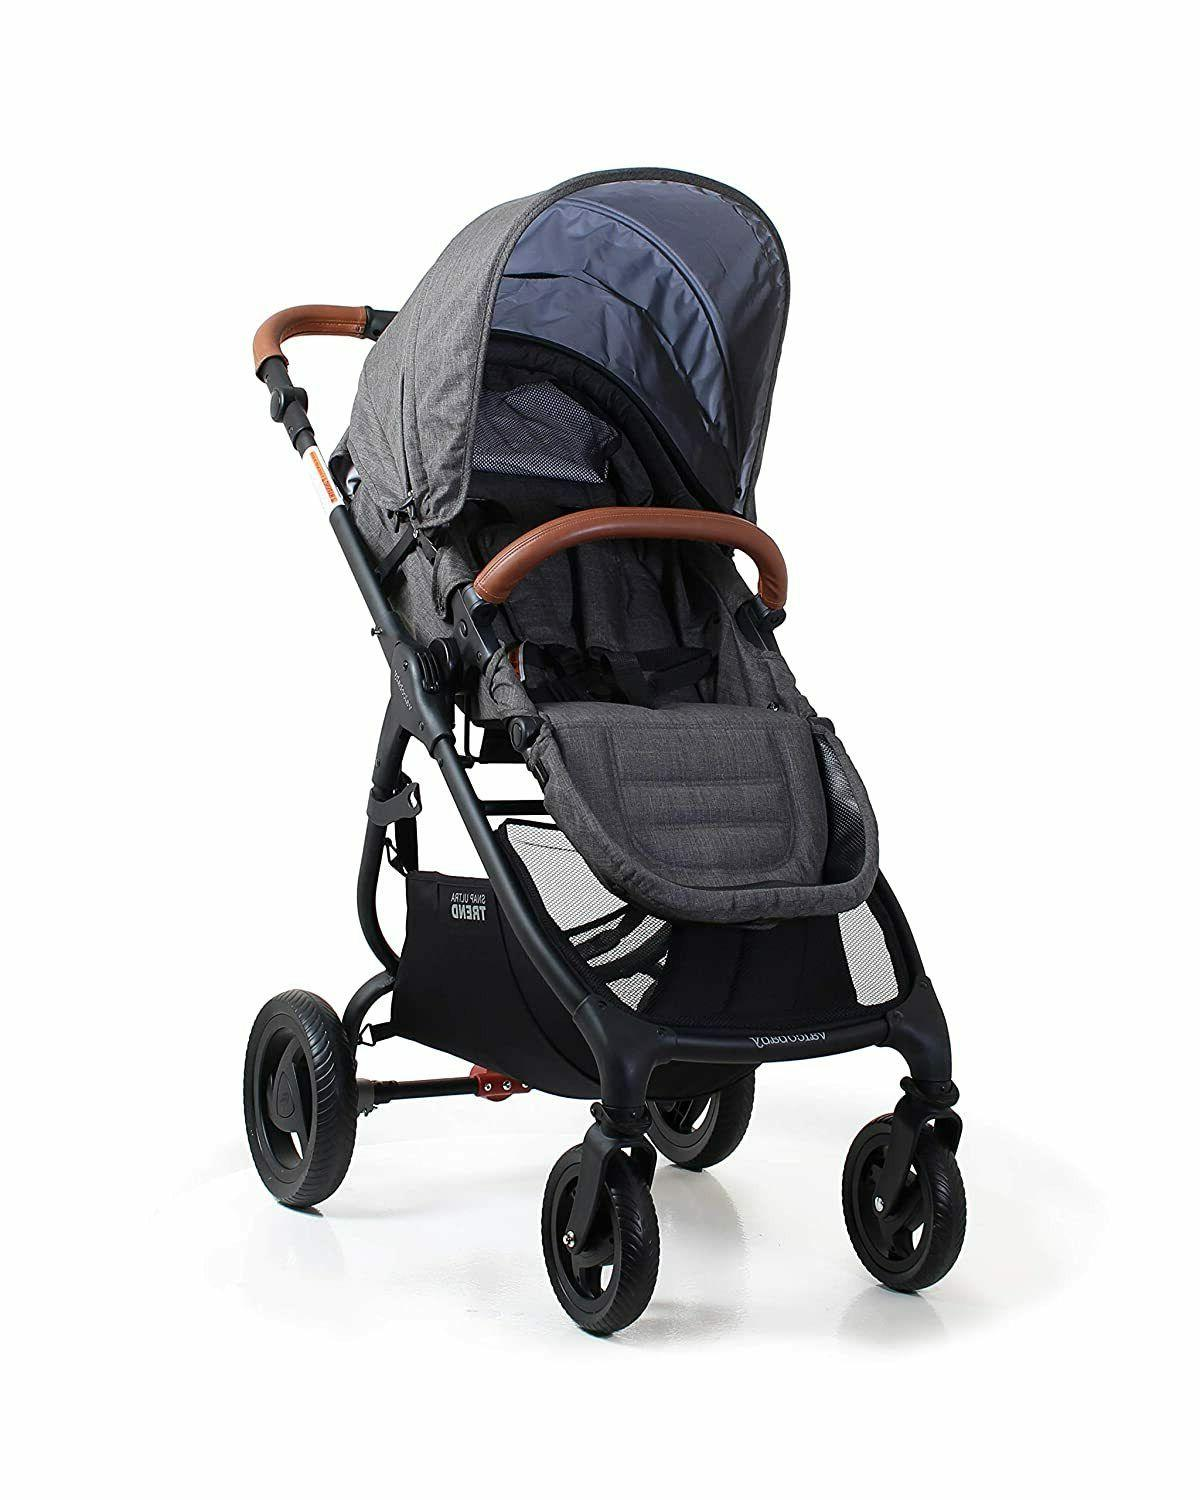 snap 4 ultra trend stroller in charcoal